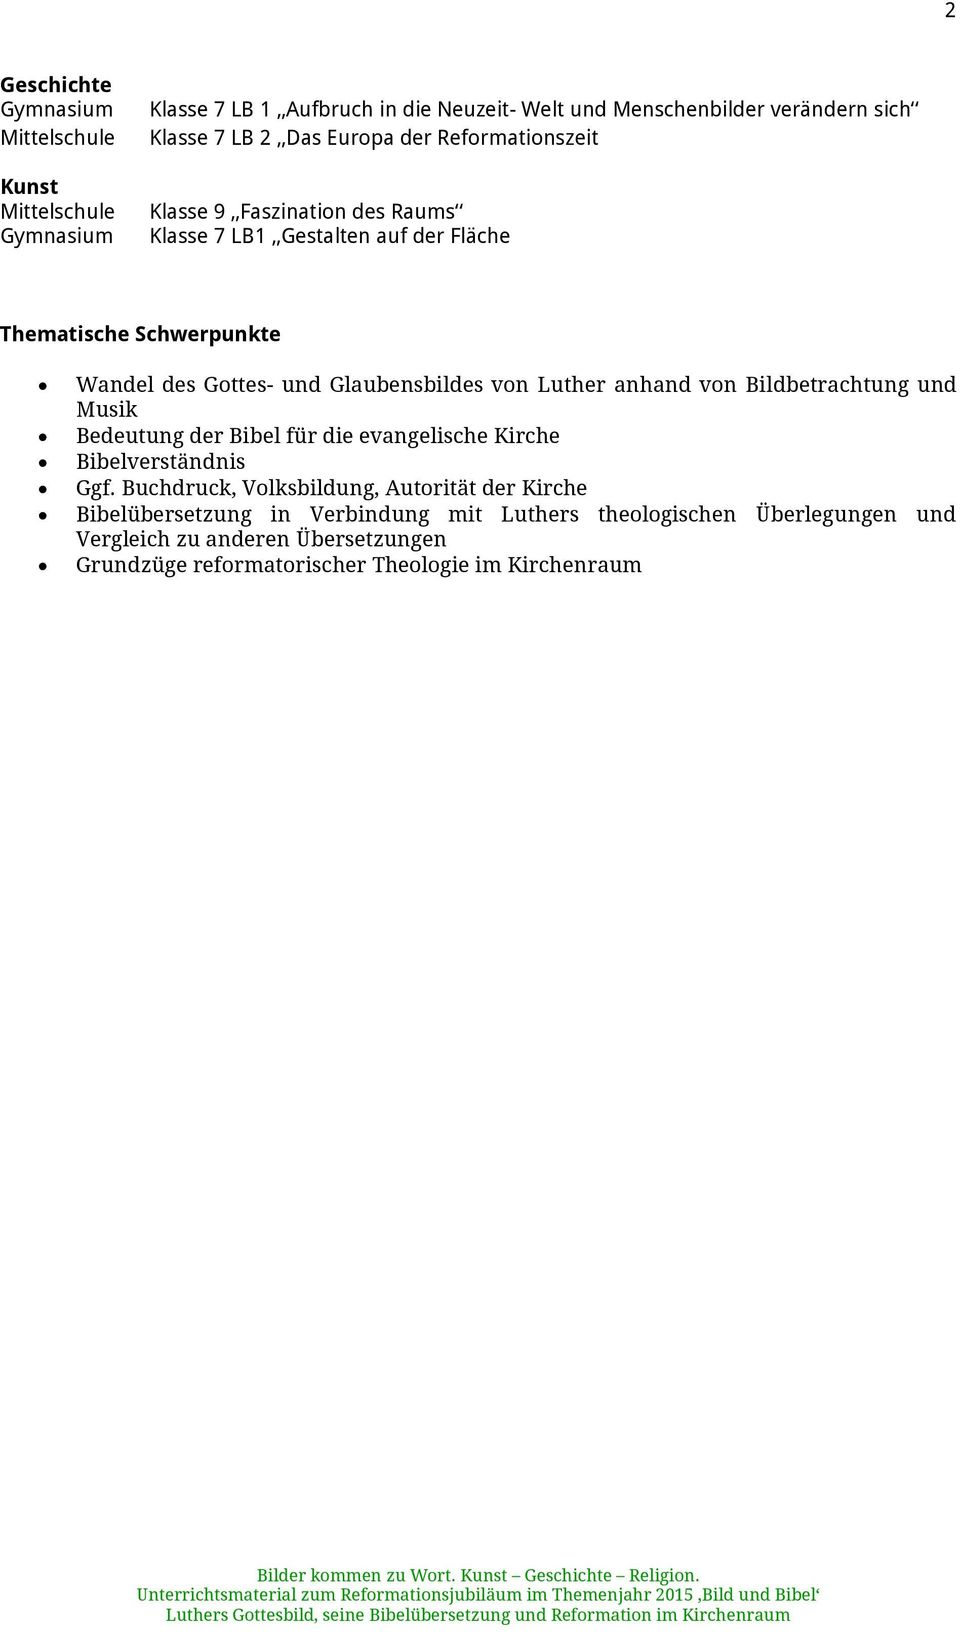 Fein Sample Lebenslauf Autorität Hinweis Bilder - Entry Level Resume ...